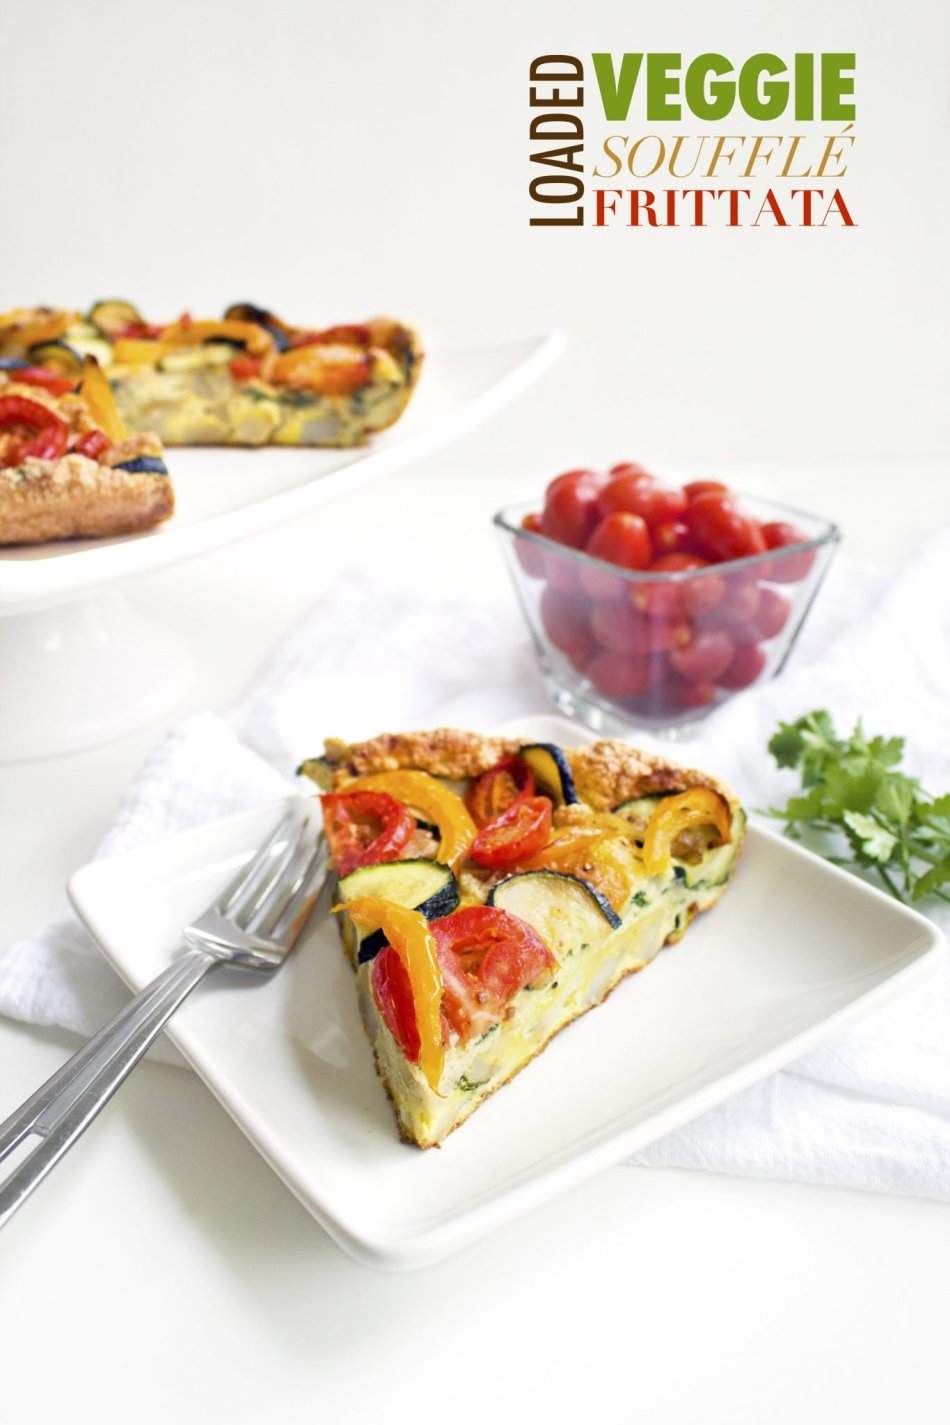 Loaded Veggie Soufflé Frittata | Paleo and Whole30 friendly!